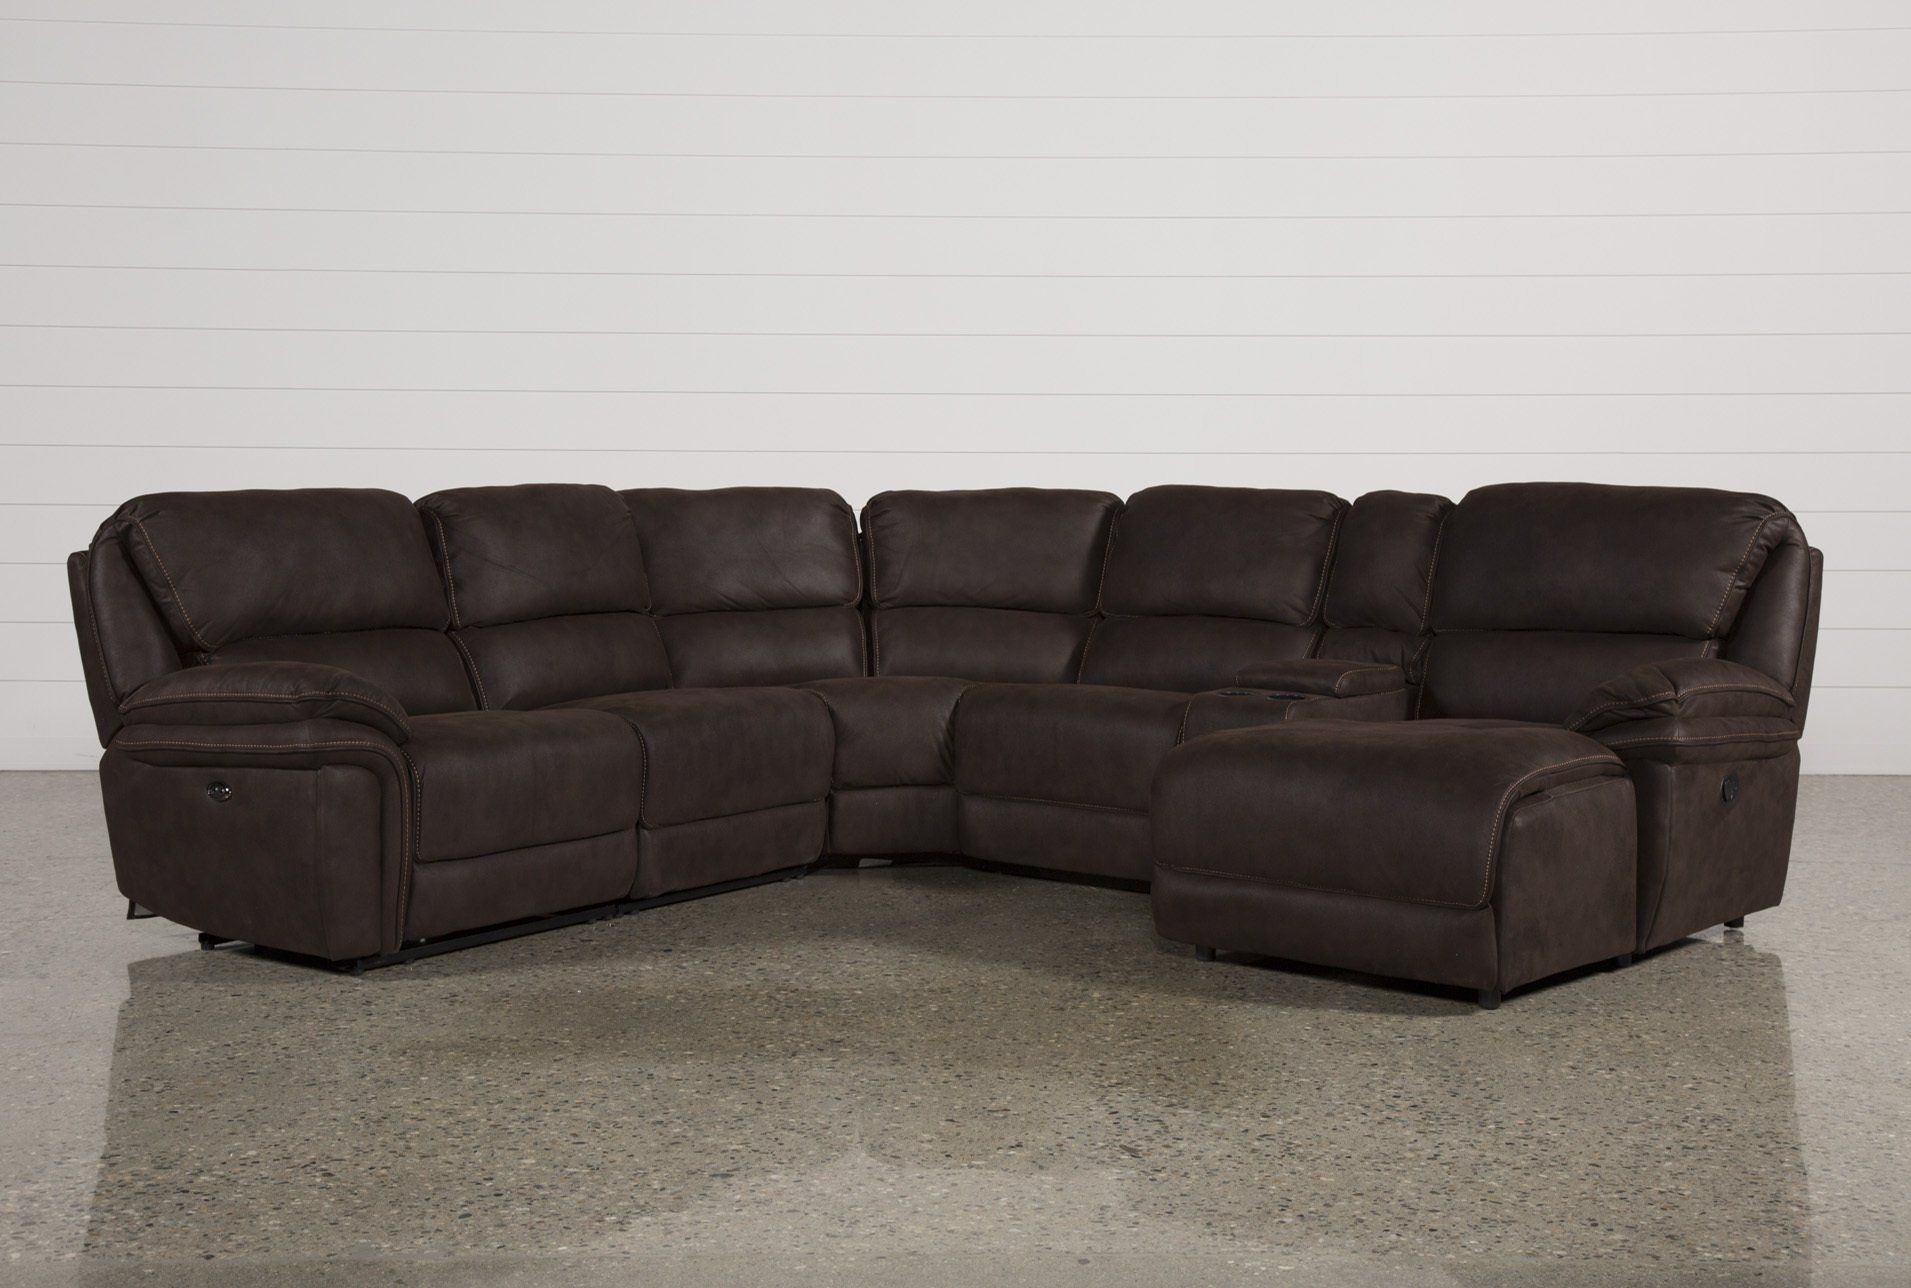 Norfolk Chocolate 6 Piece Sectional W/raf Chaise | Pinterest Pertaining To Norfolk Chocolate 6 Piece Sectionals (Image 20 of 25)